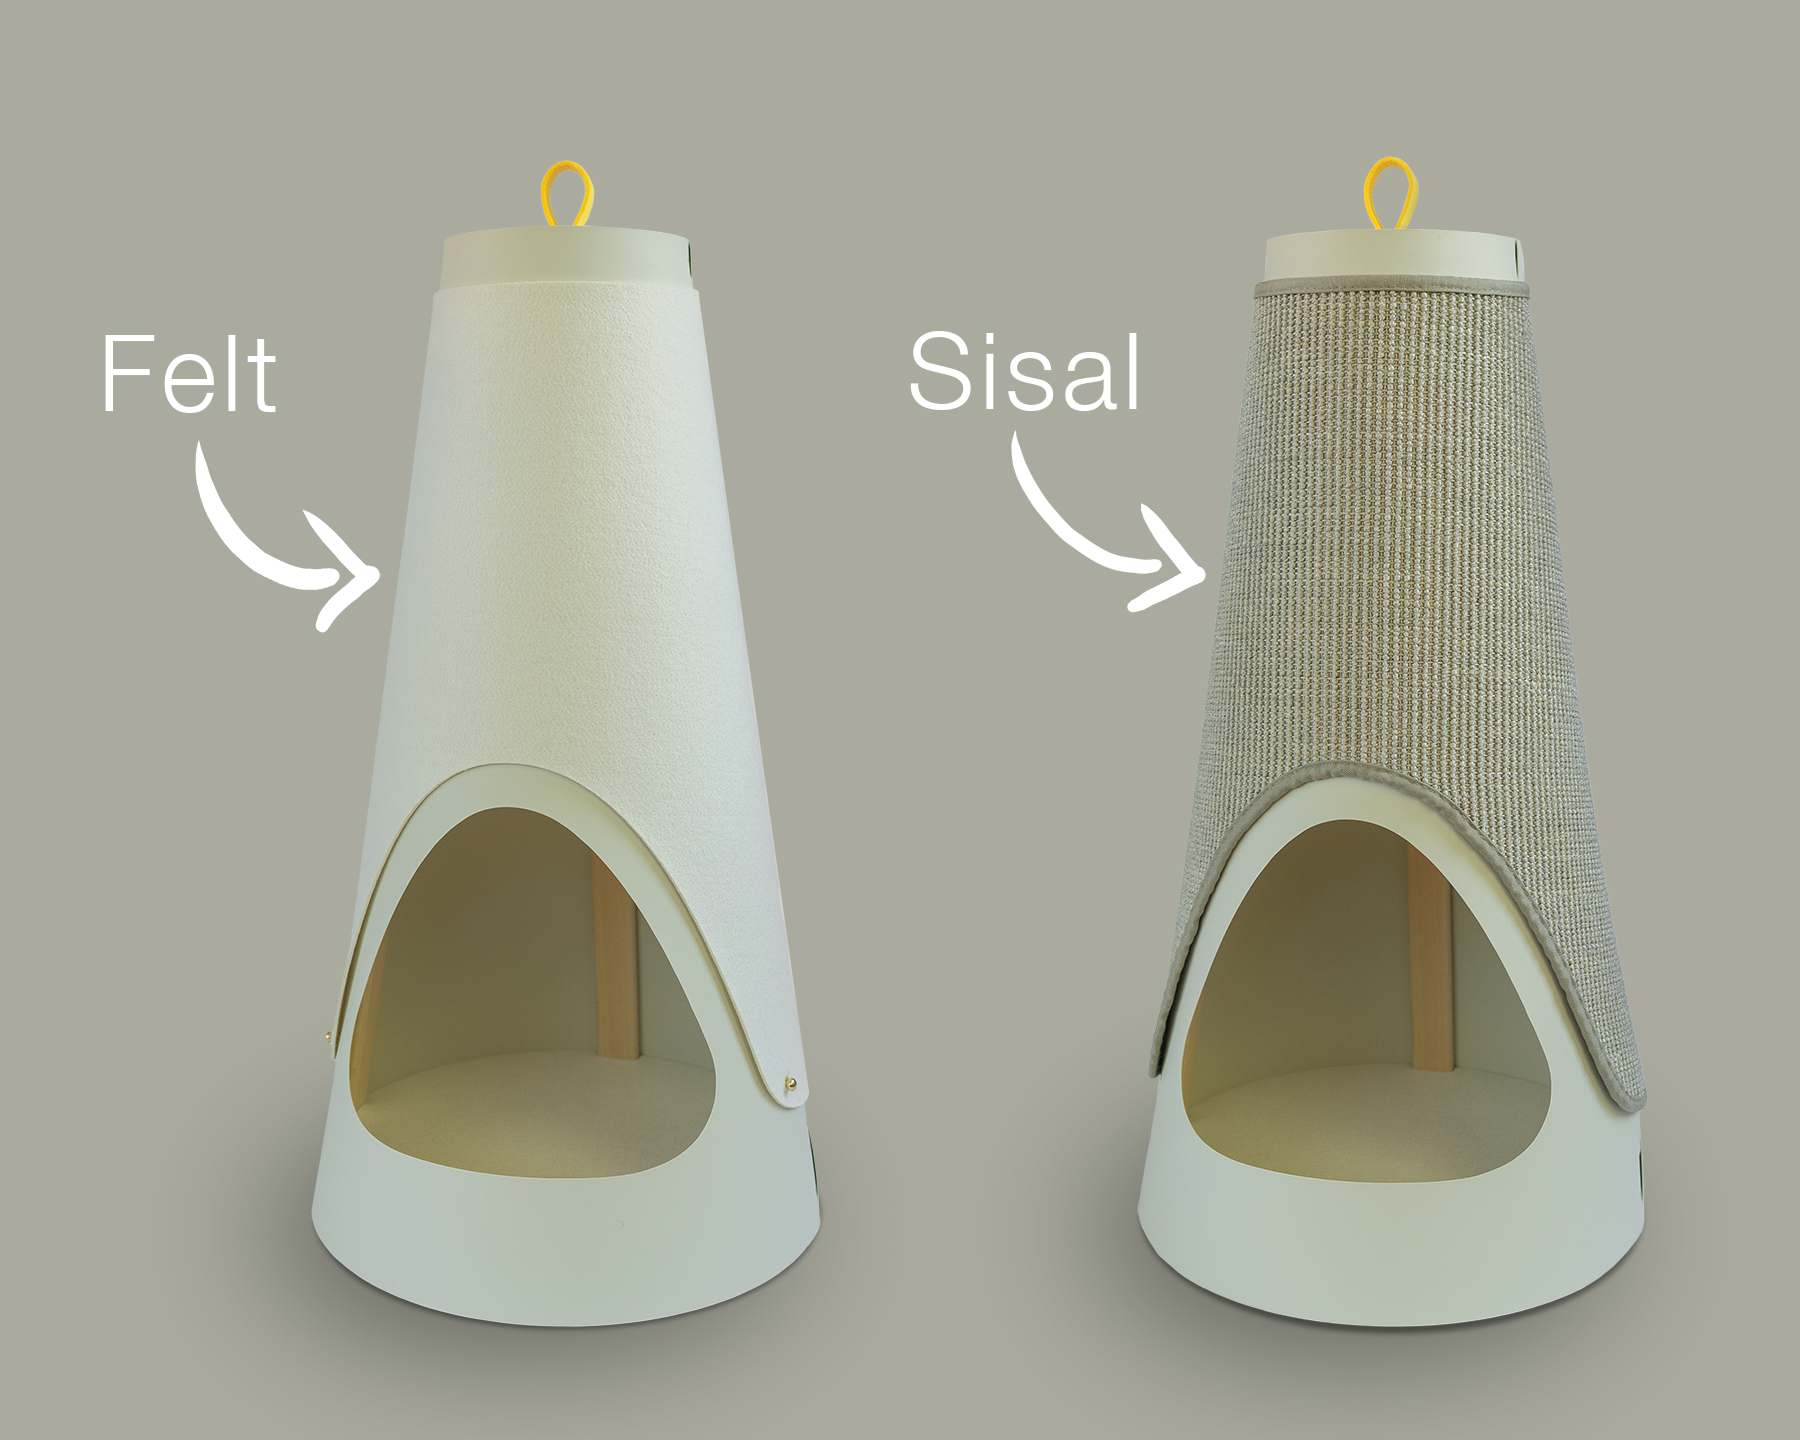 REPLACEABLE WRAP - The Cone is designed to be long-lasting, not another product that will quickly end up in a landfill. When the wrap becomes worn, it can be easily replaced. Our felt wrap is also reversible, and we estimate one will last a single kitty about 6 months (3 months per side). Our premium sisal wrap is super durable and can last a single cat up to five years!